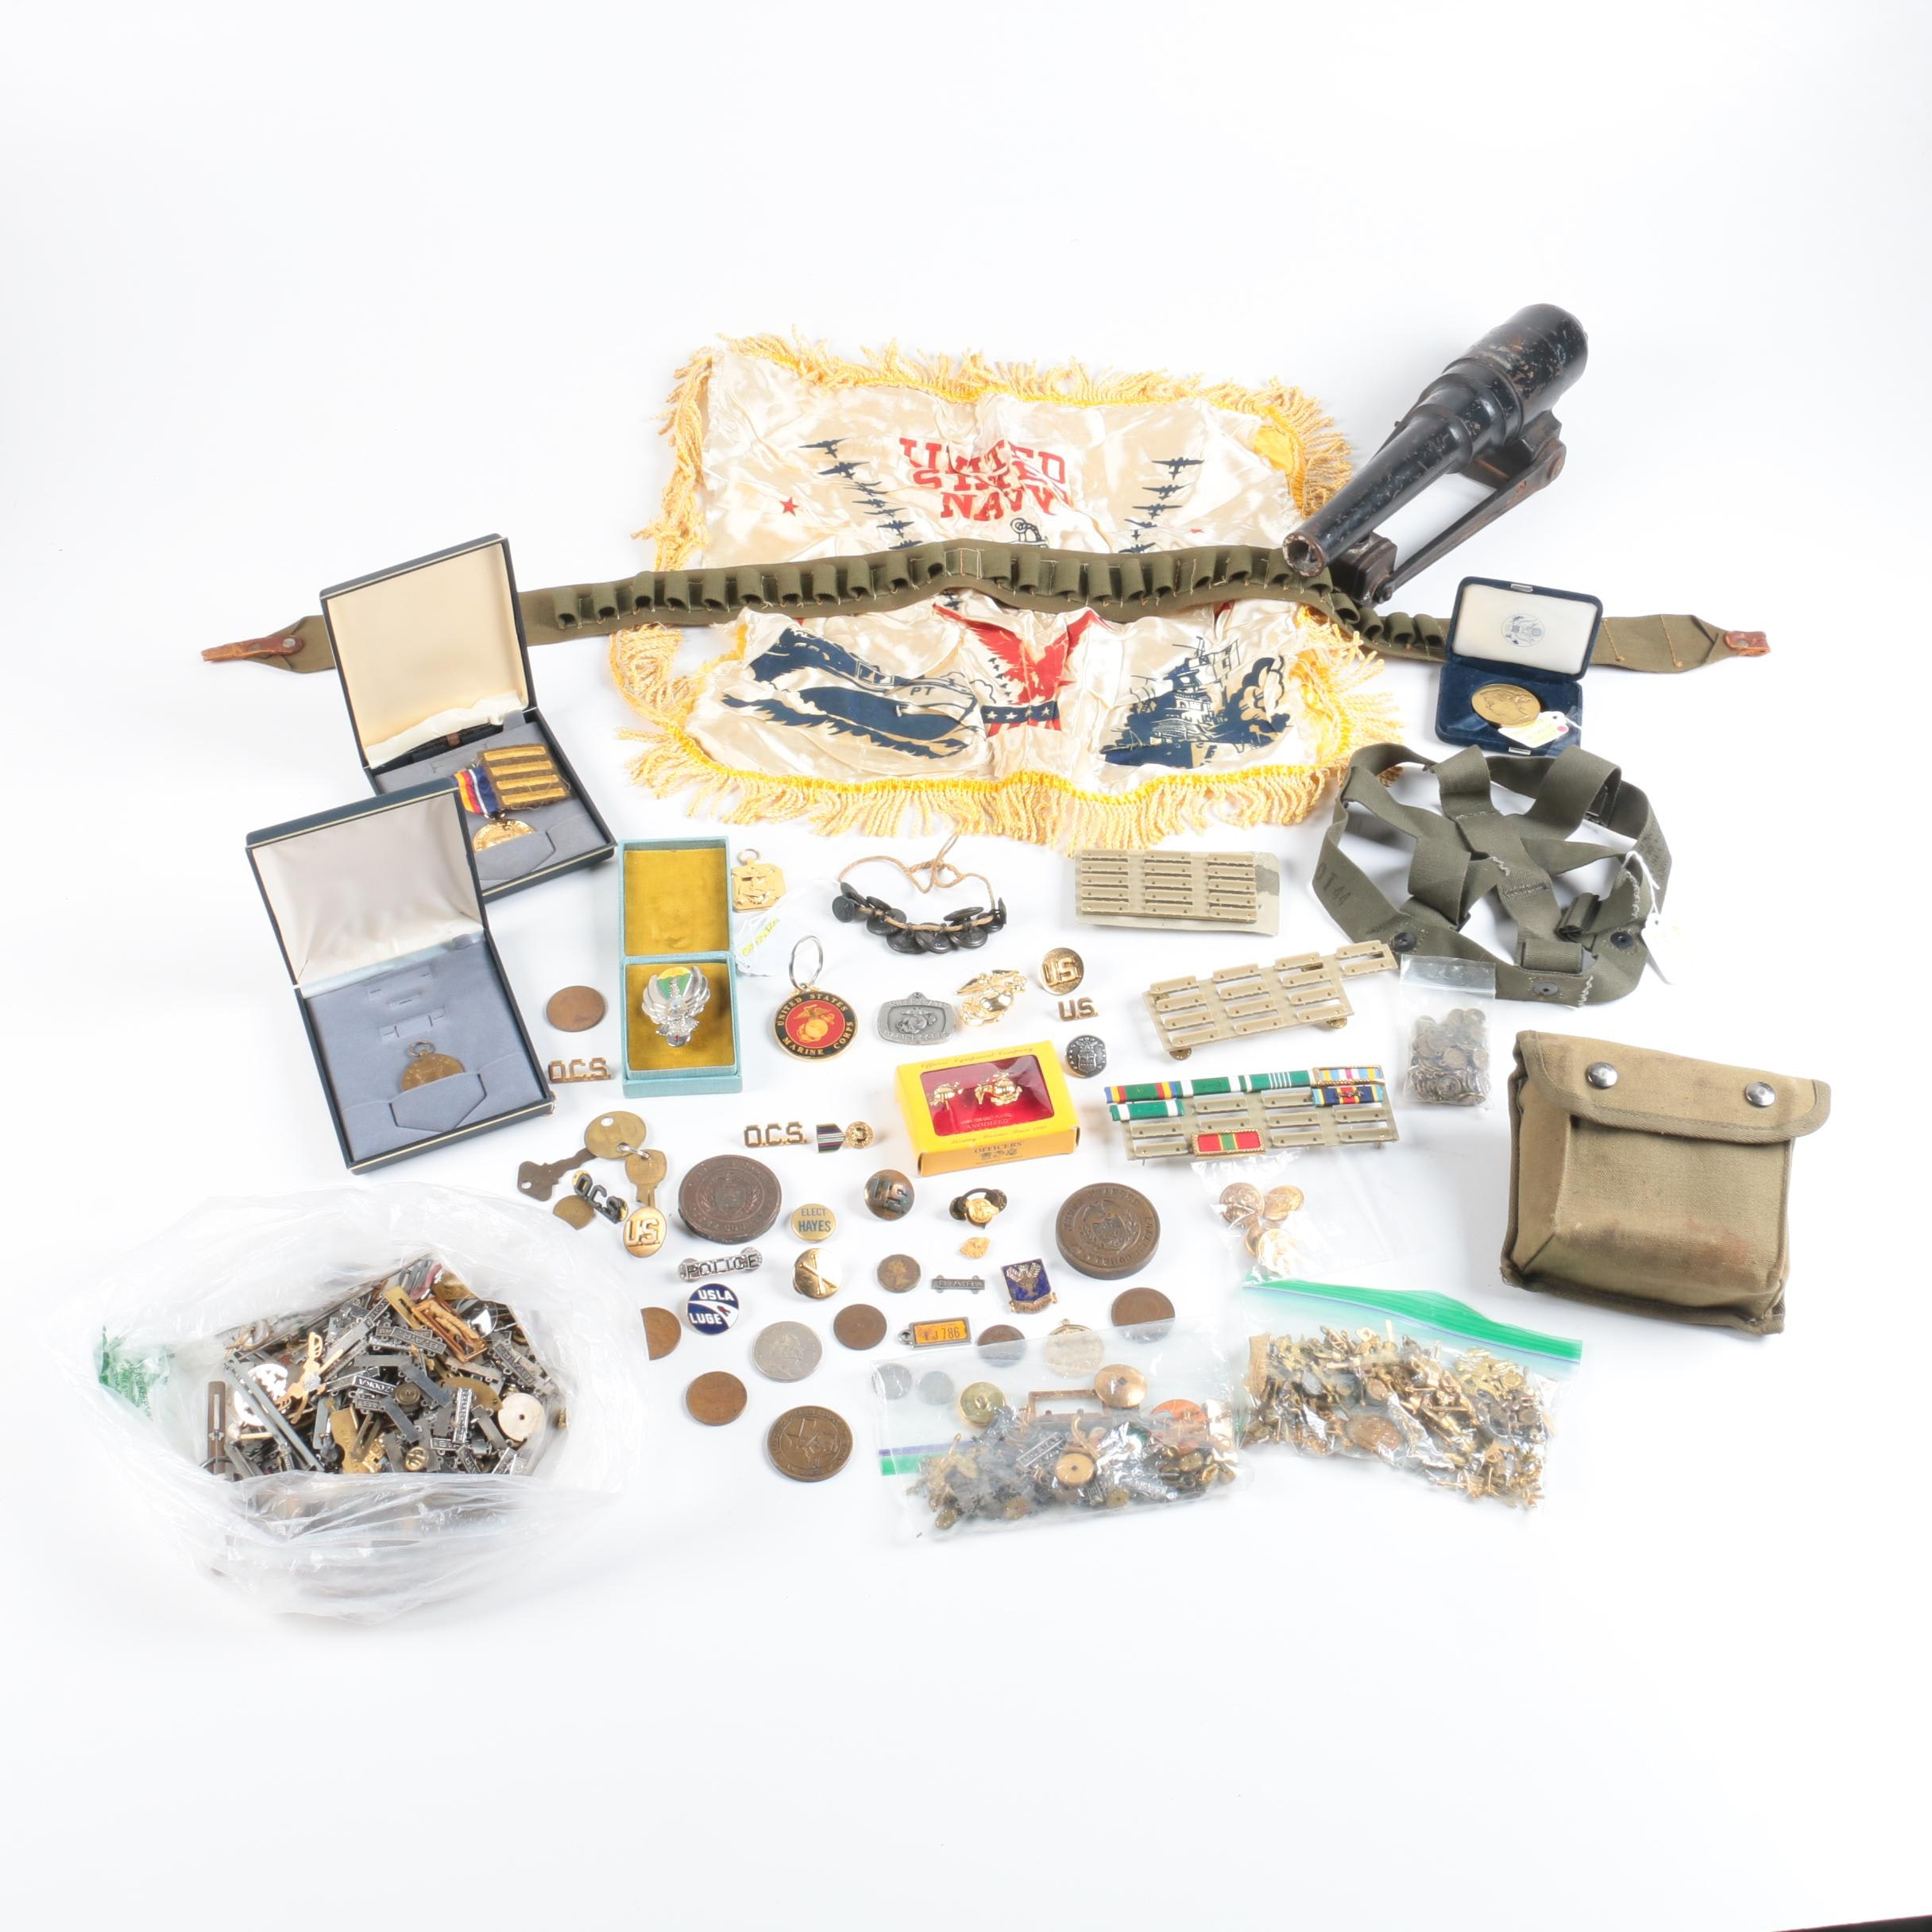 Military Accessories Lot with Medals, Pins, Coins, Webbing, and a Toy Cannon